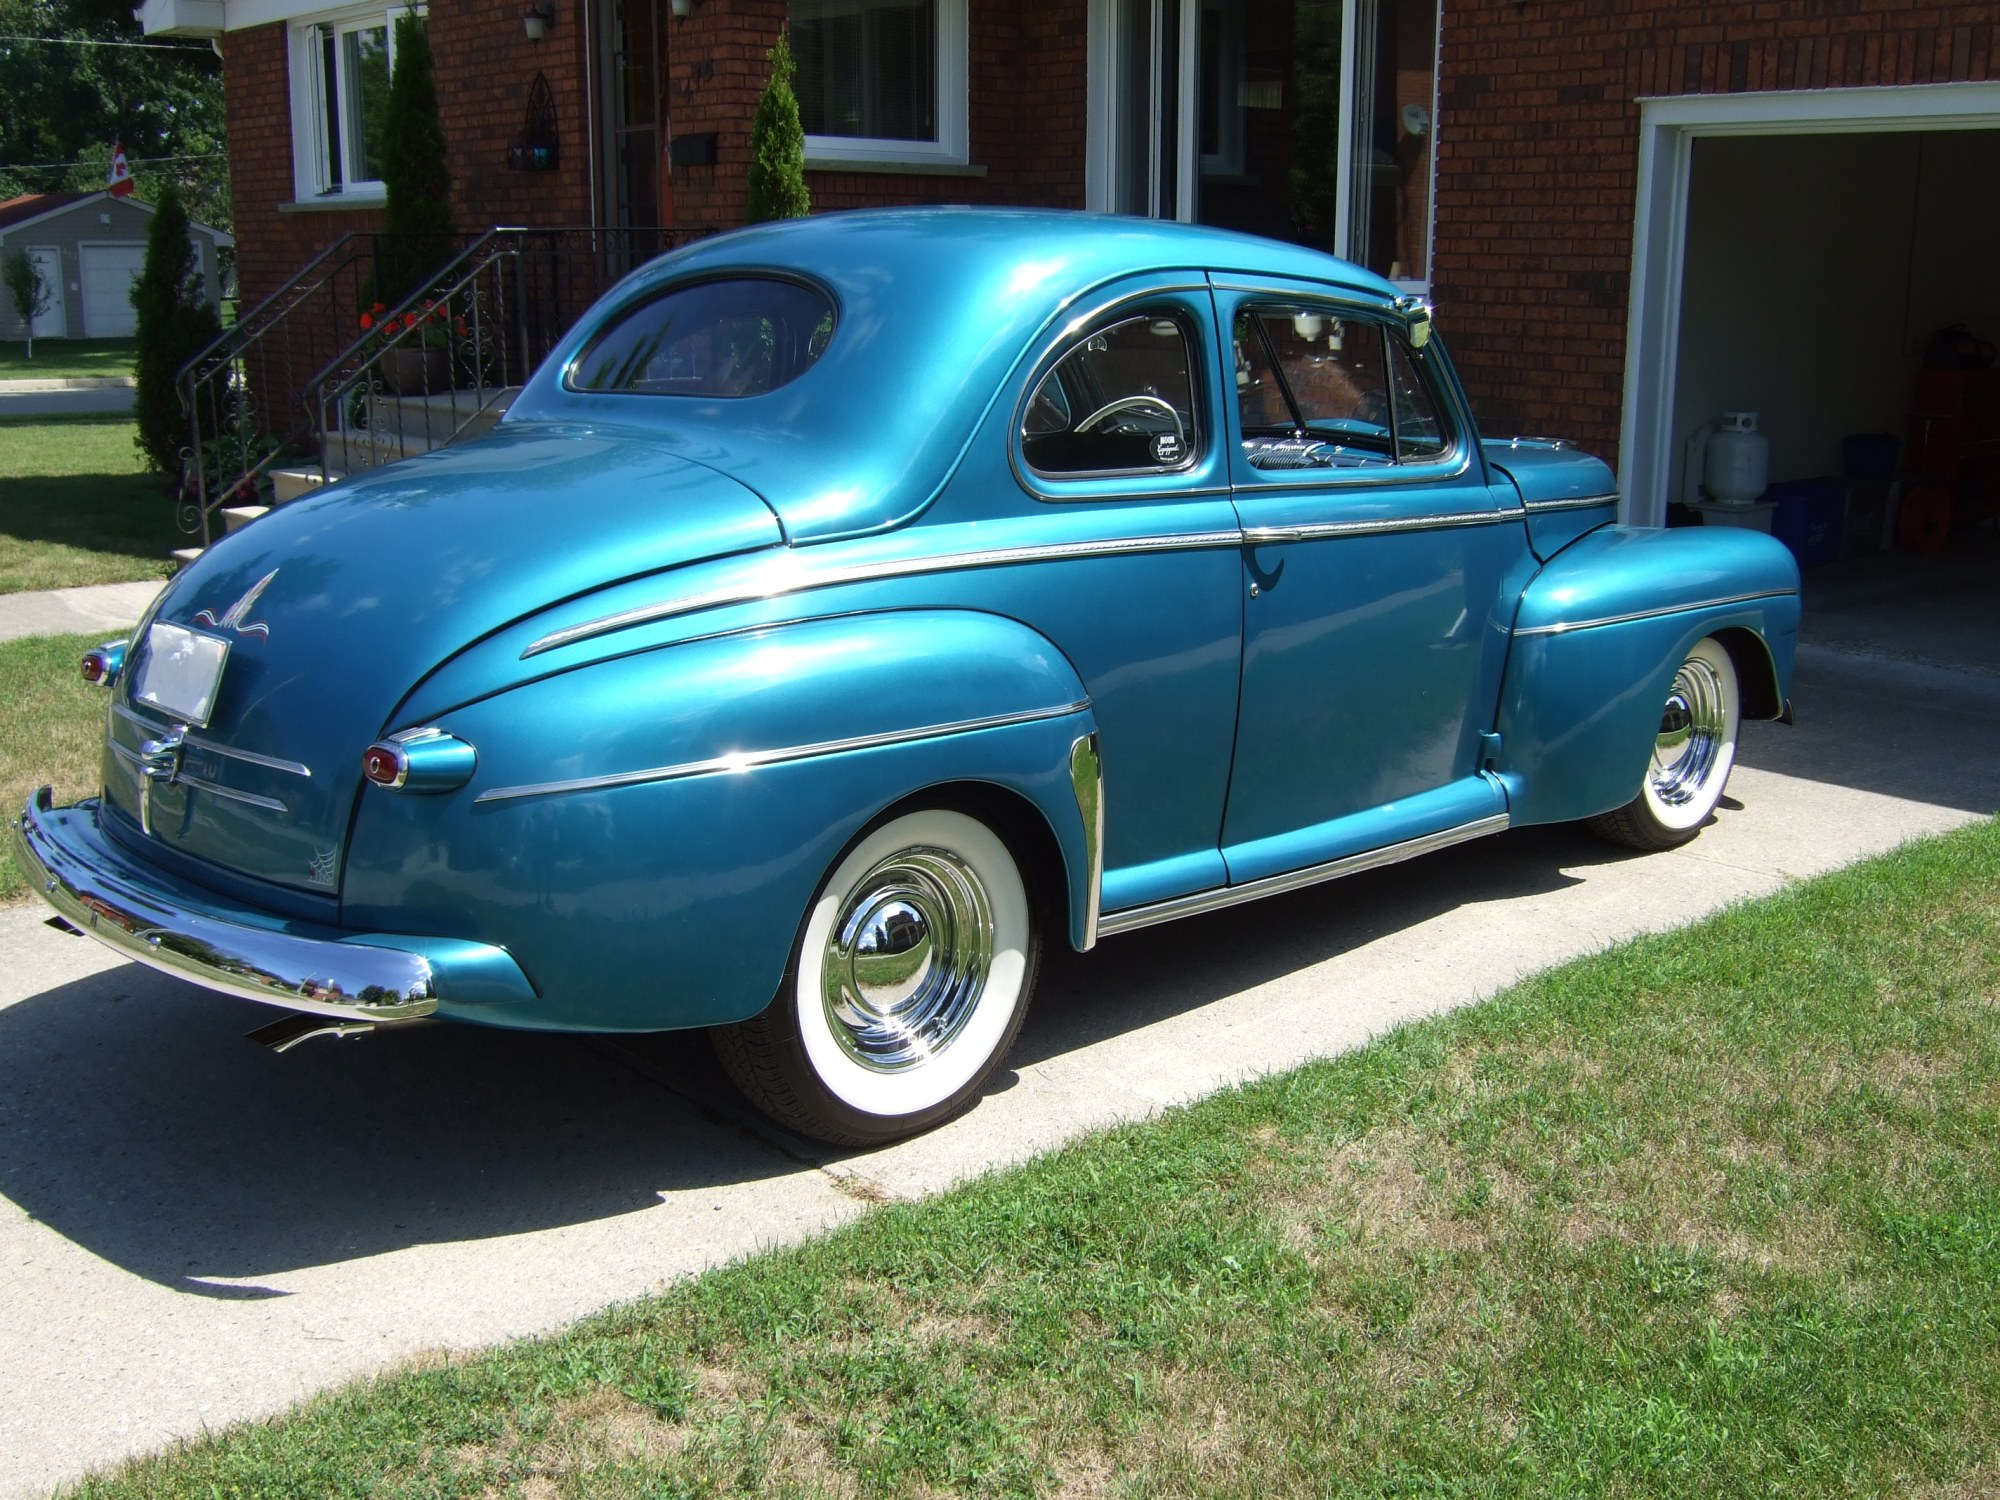 hight resolution of 1946 ford coupe rust free original body street rod the h a m b sedan coupe 1946 ford super delux wiring harness for 1946 ford coupe sedan